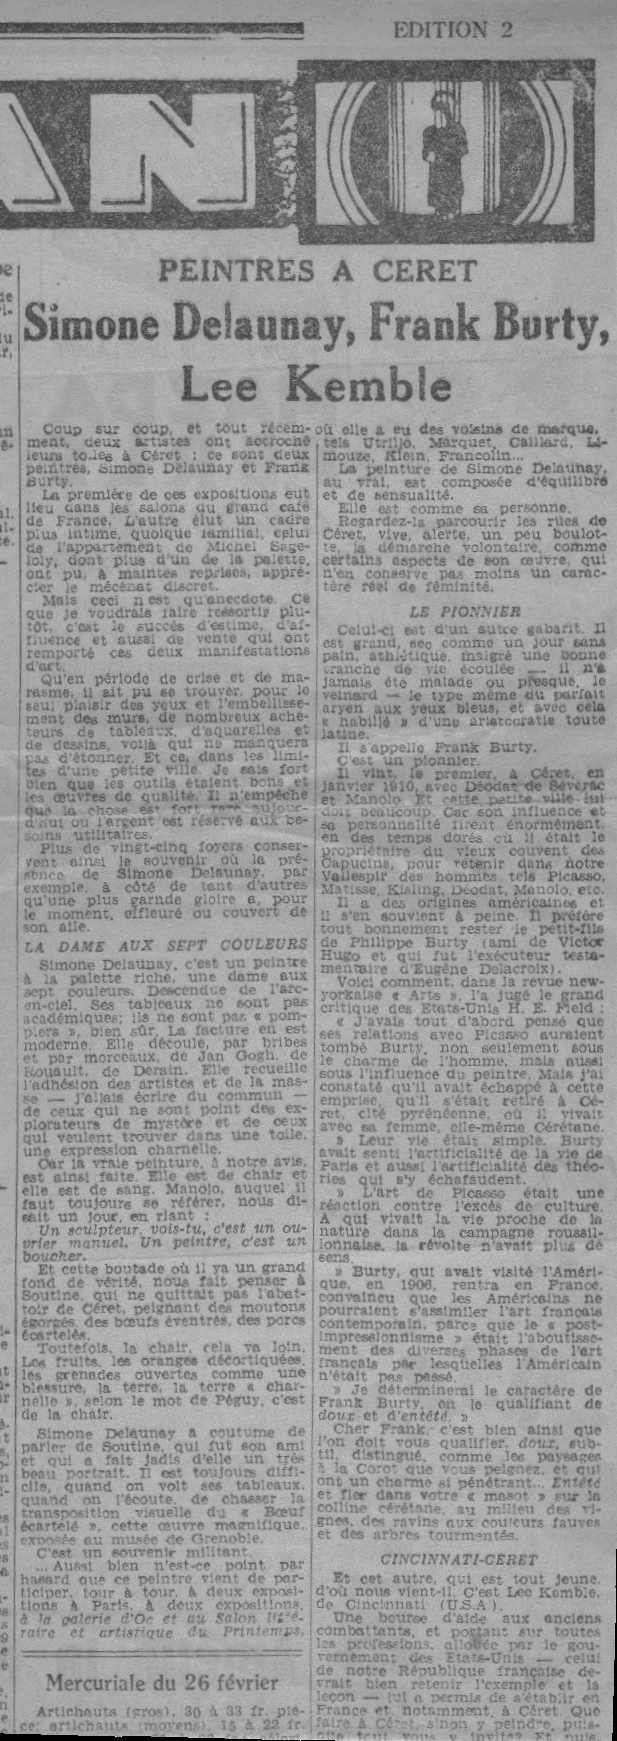 Article about three painters exhibiting in Céret in the Perpignan paper, 1950s.